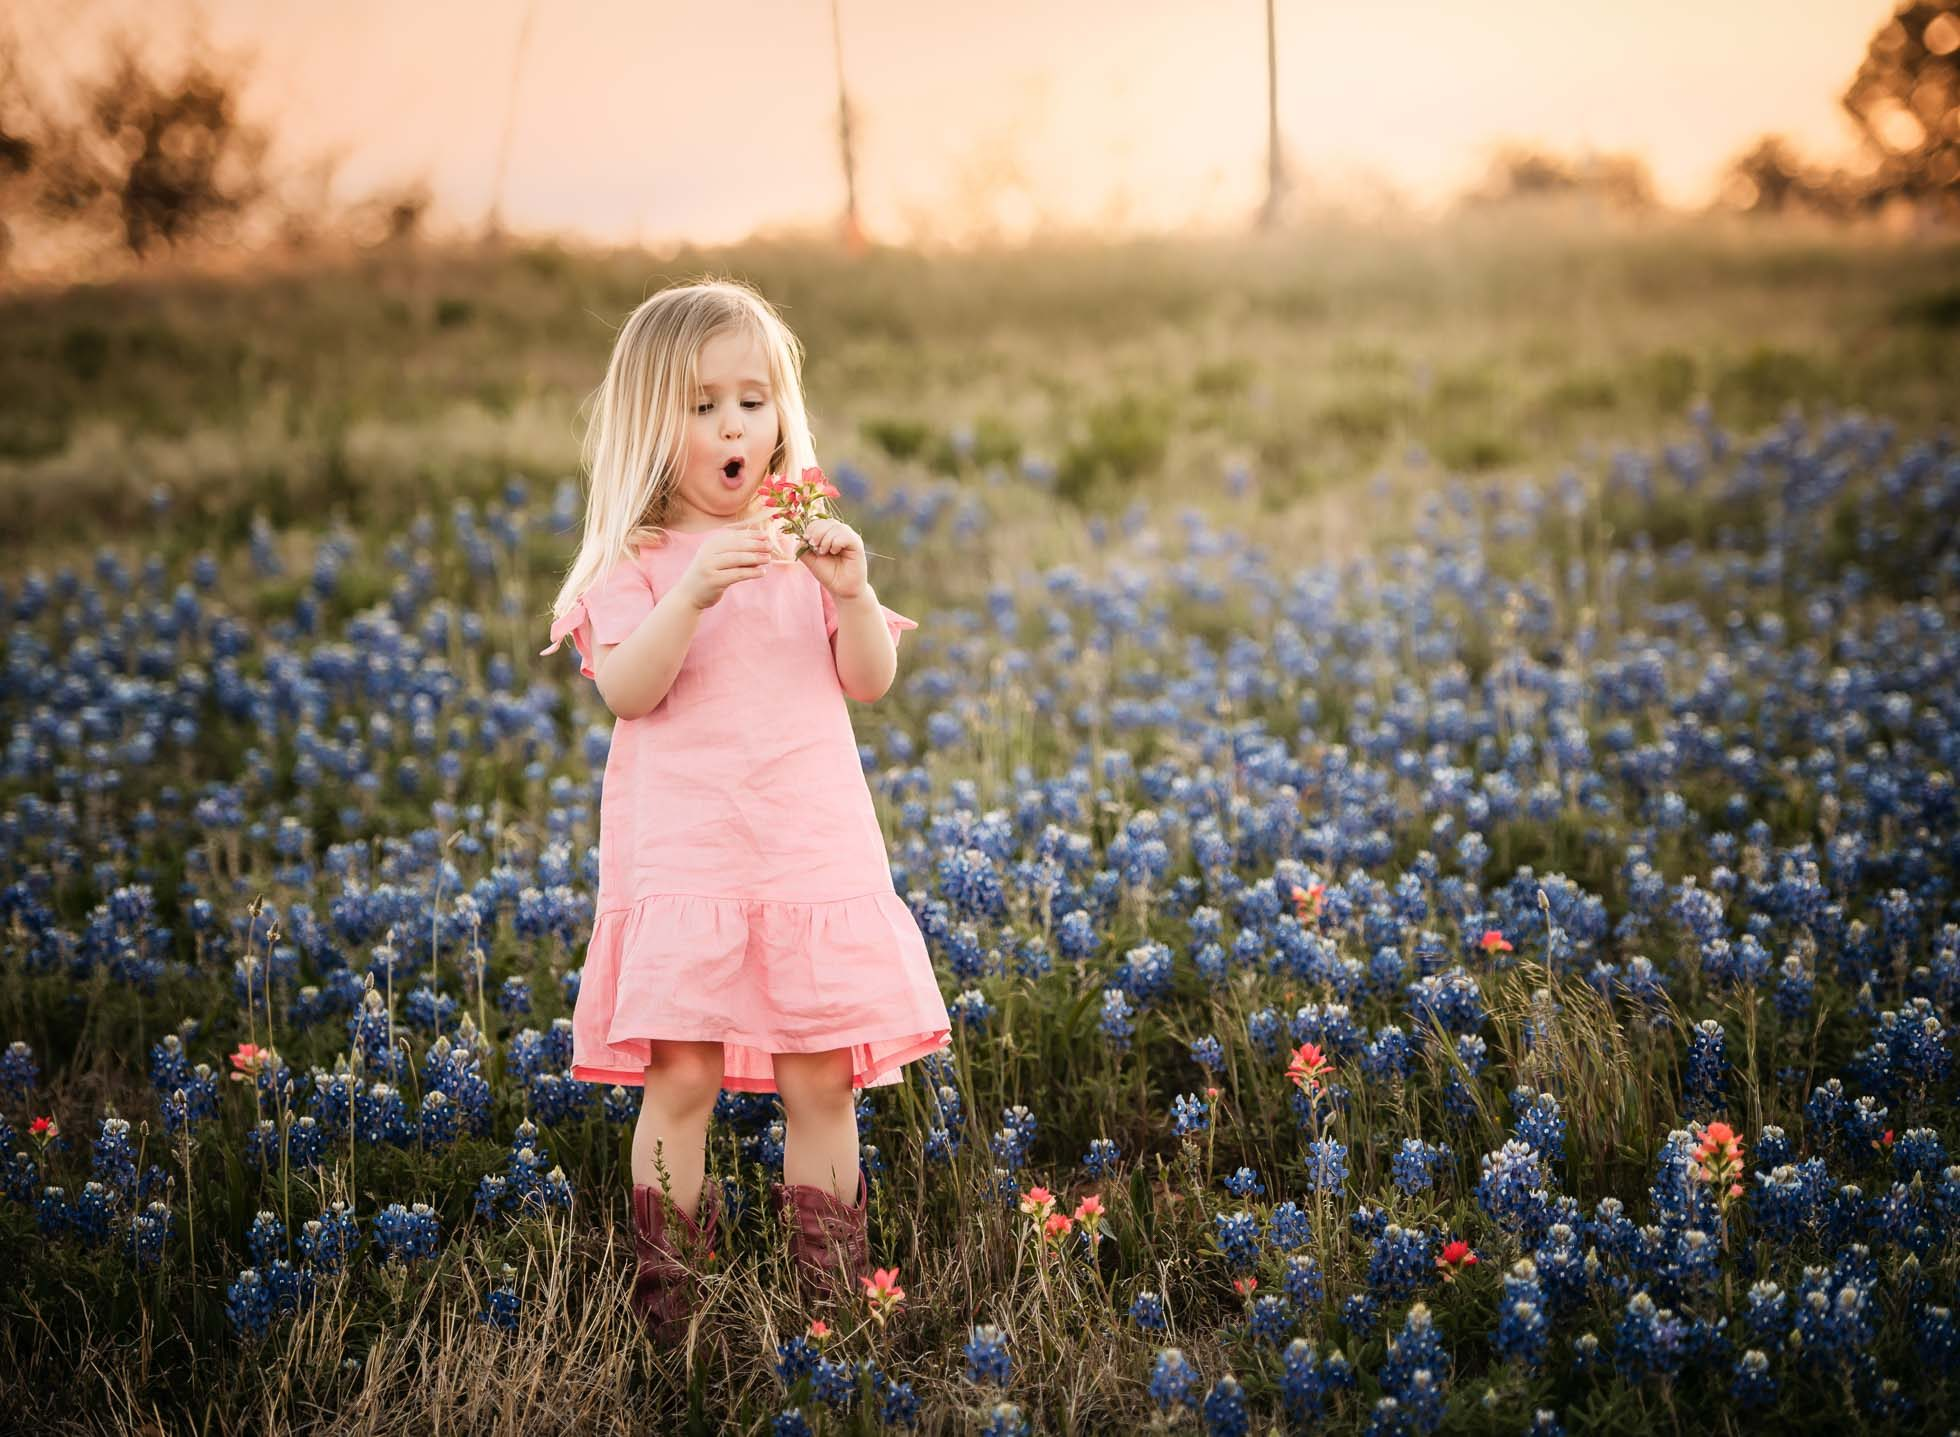 she has the best expressions blonde girl toddler in field of bluebonnets edmond ok photographer oklahoma city natural light photographer kate luber photography